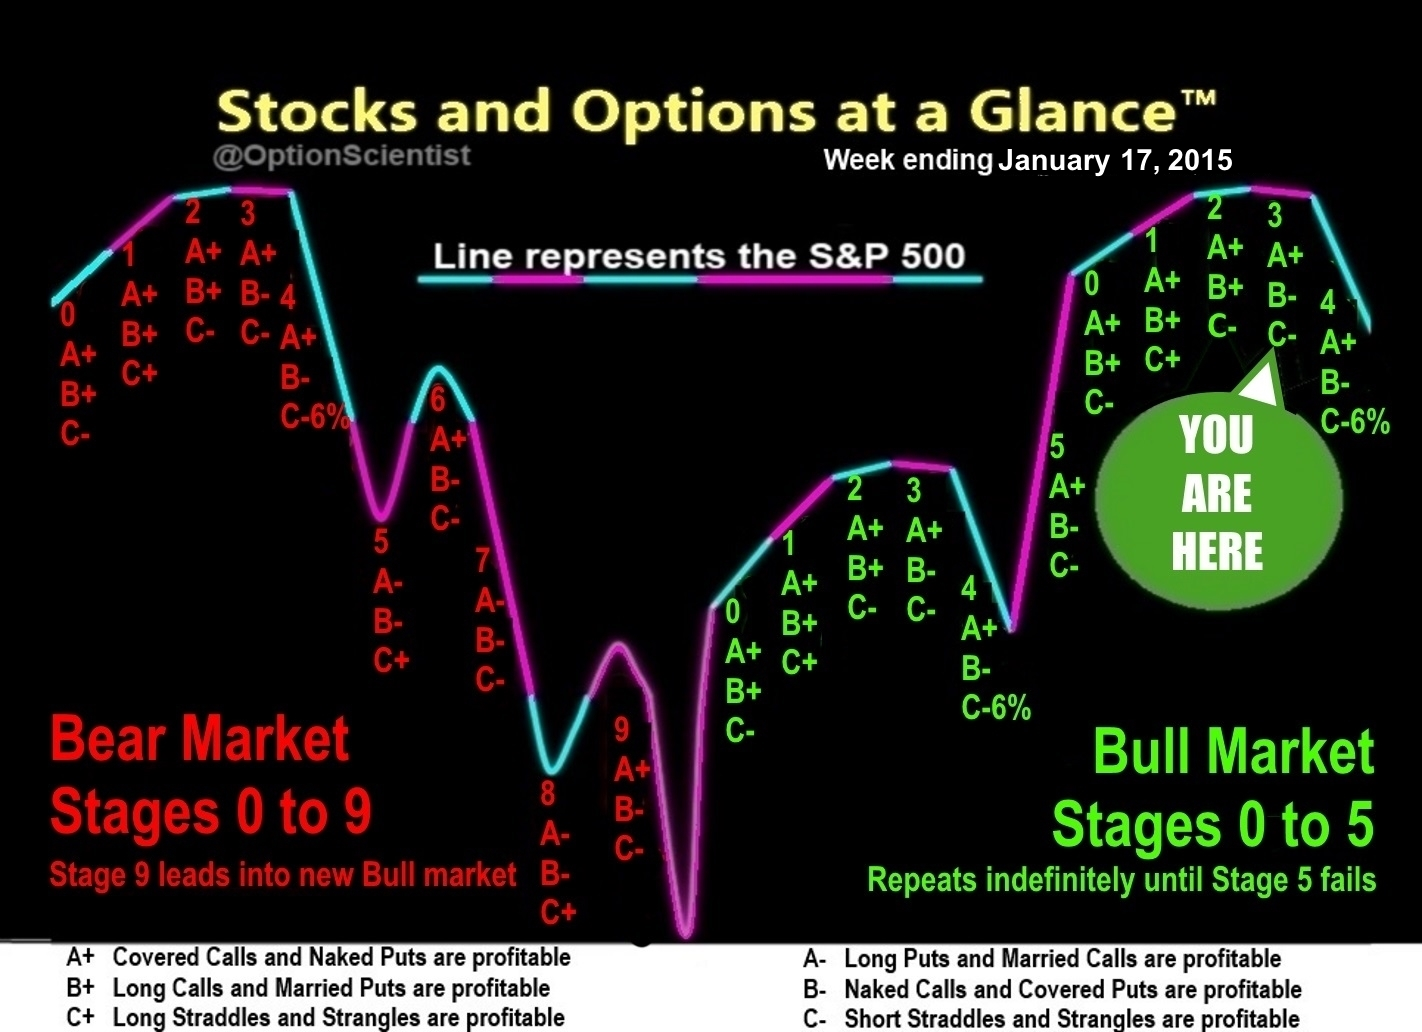 Stocks and Options at a Glance 01-17-15